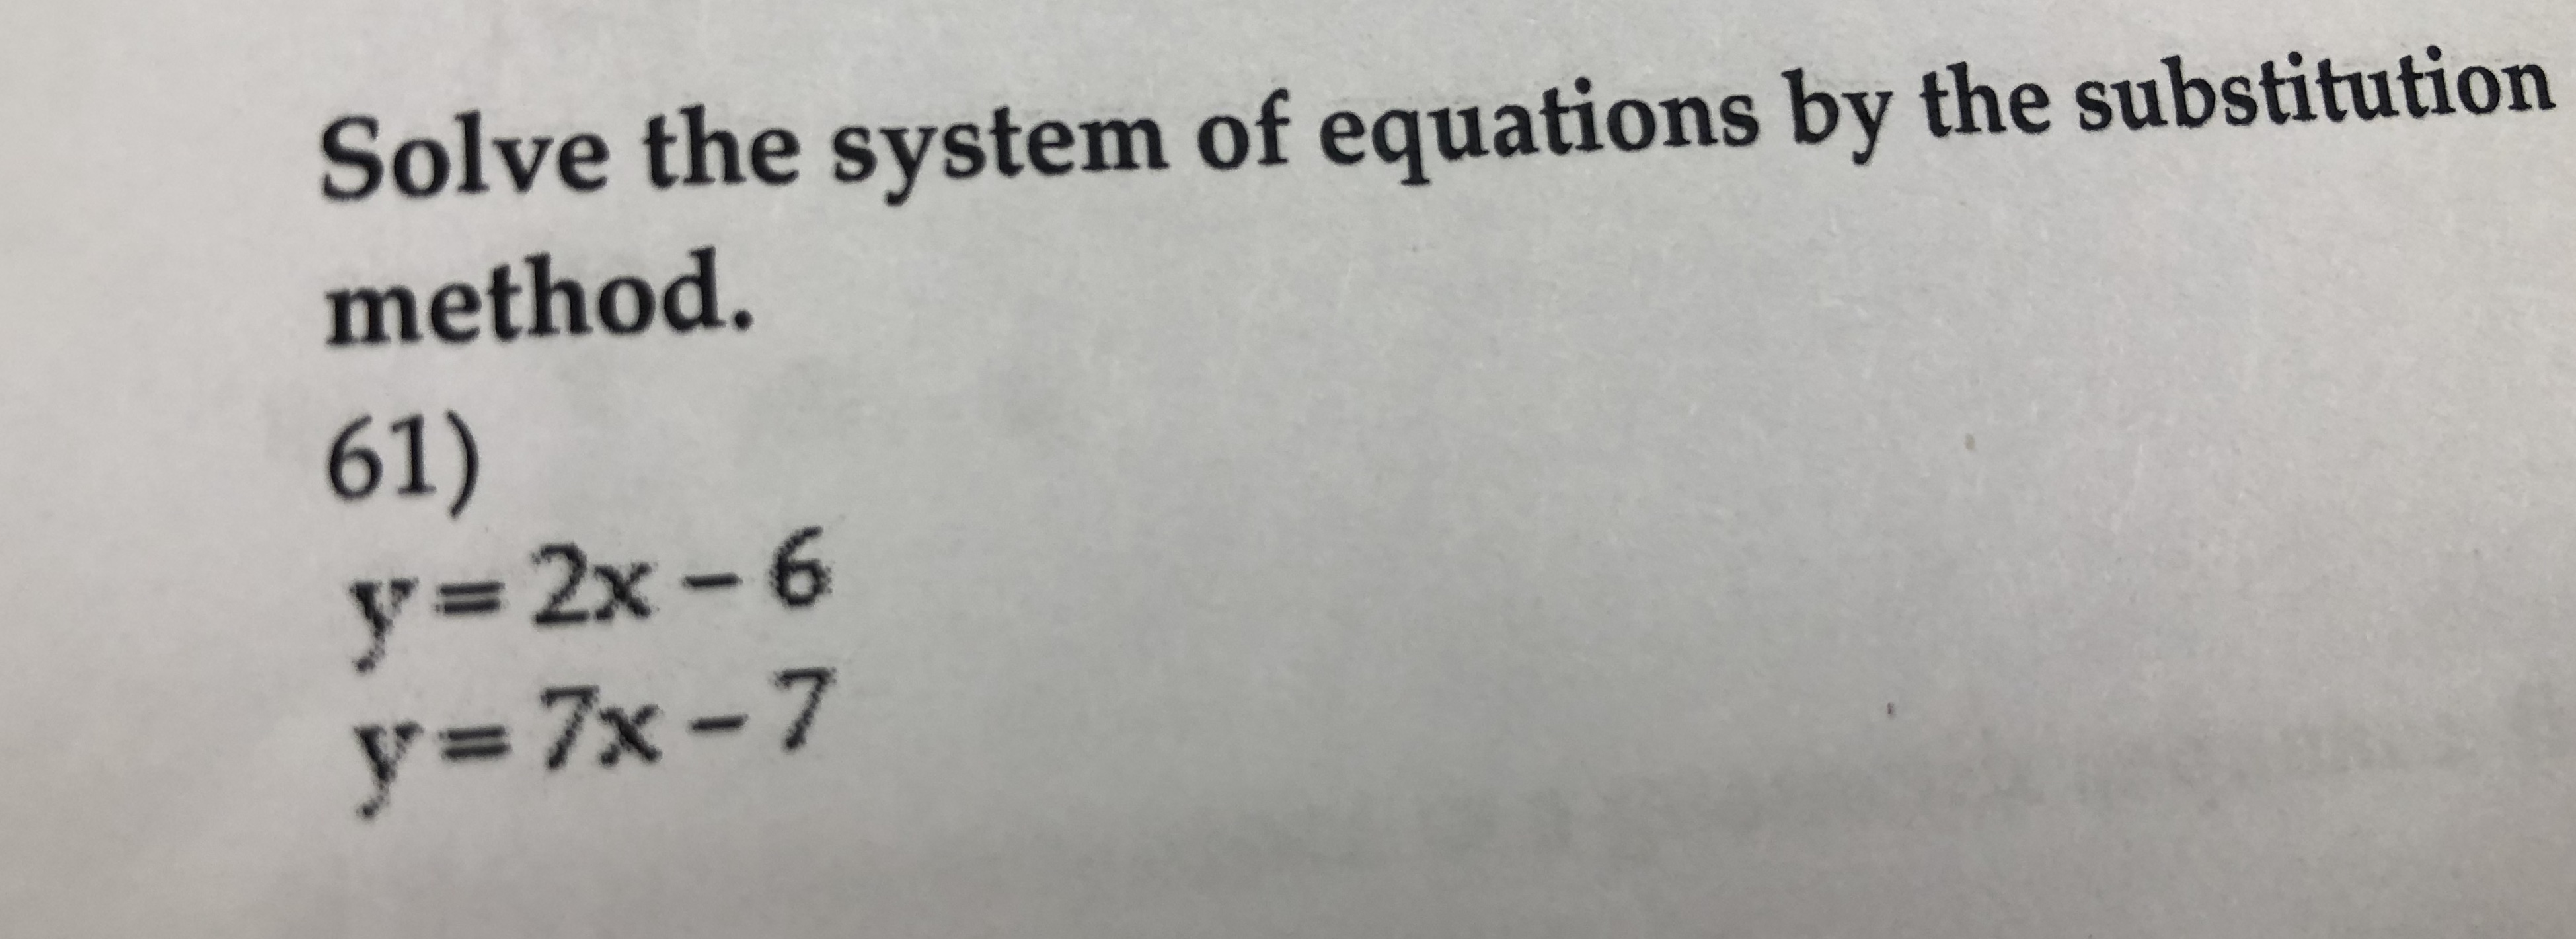 Solve the system of equations by the substitution method. 61) y-7x-7